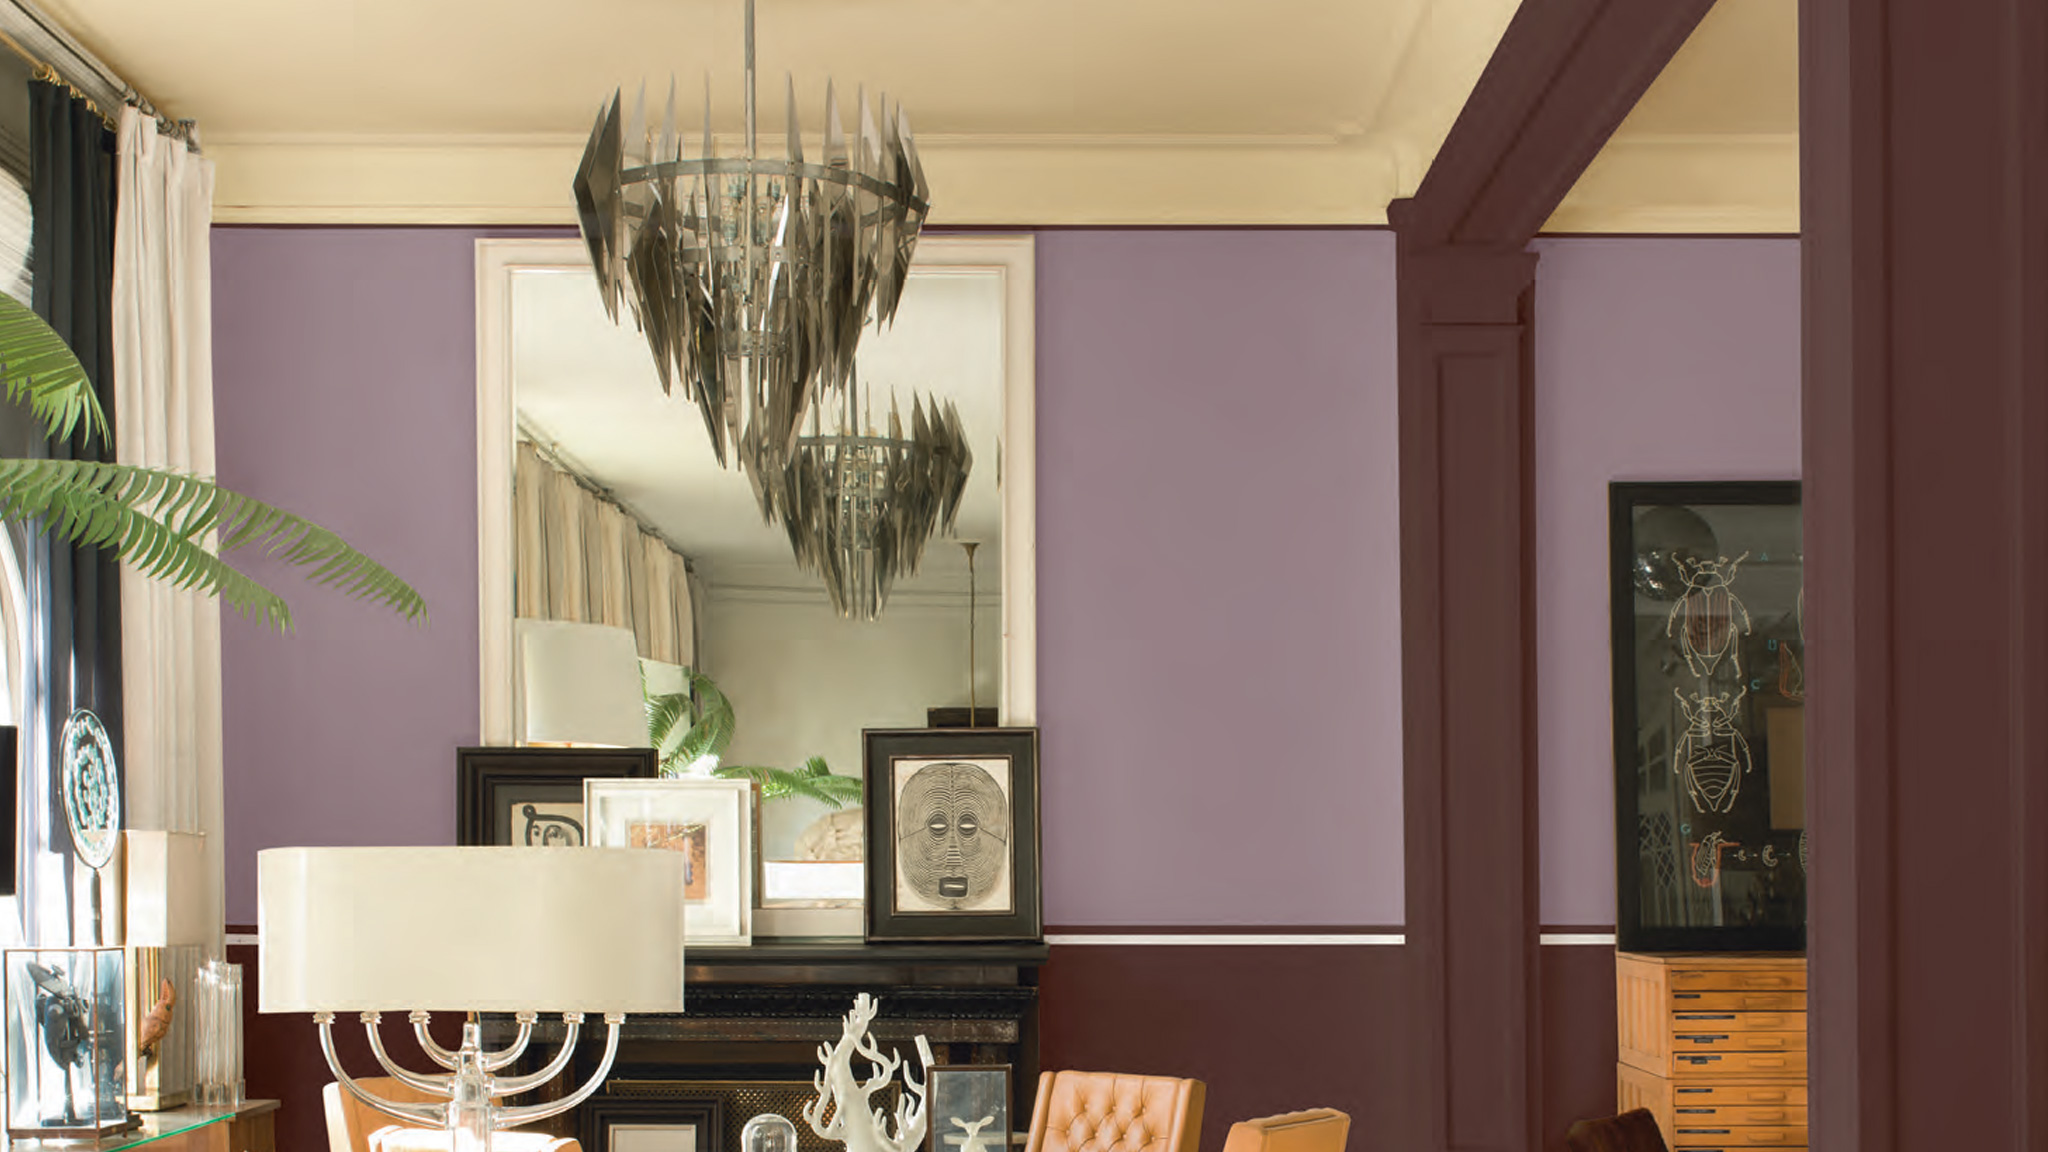 Dulux Ambiance - Classic Luxury Section 2